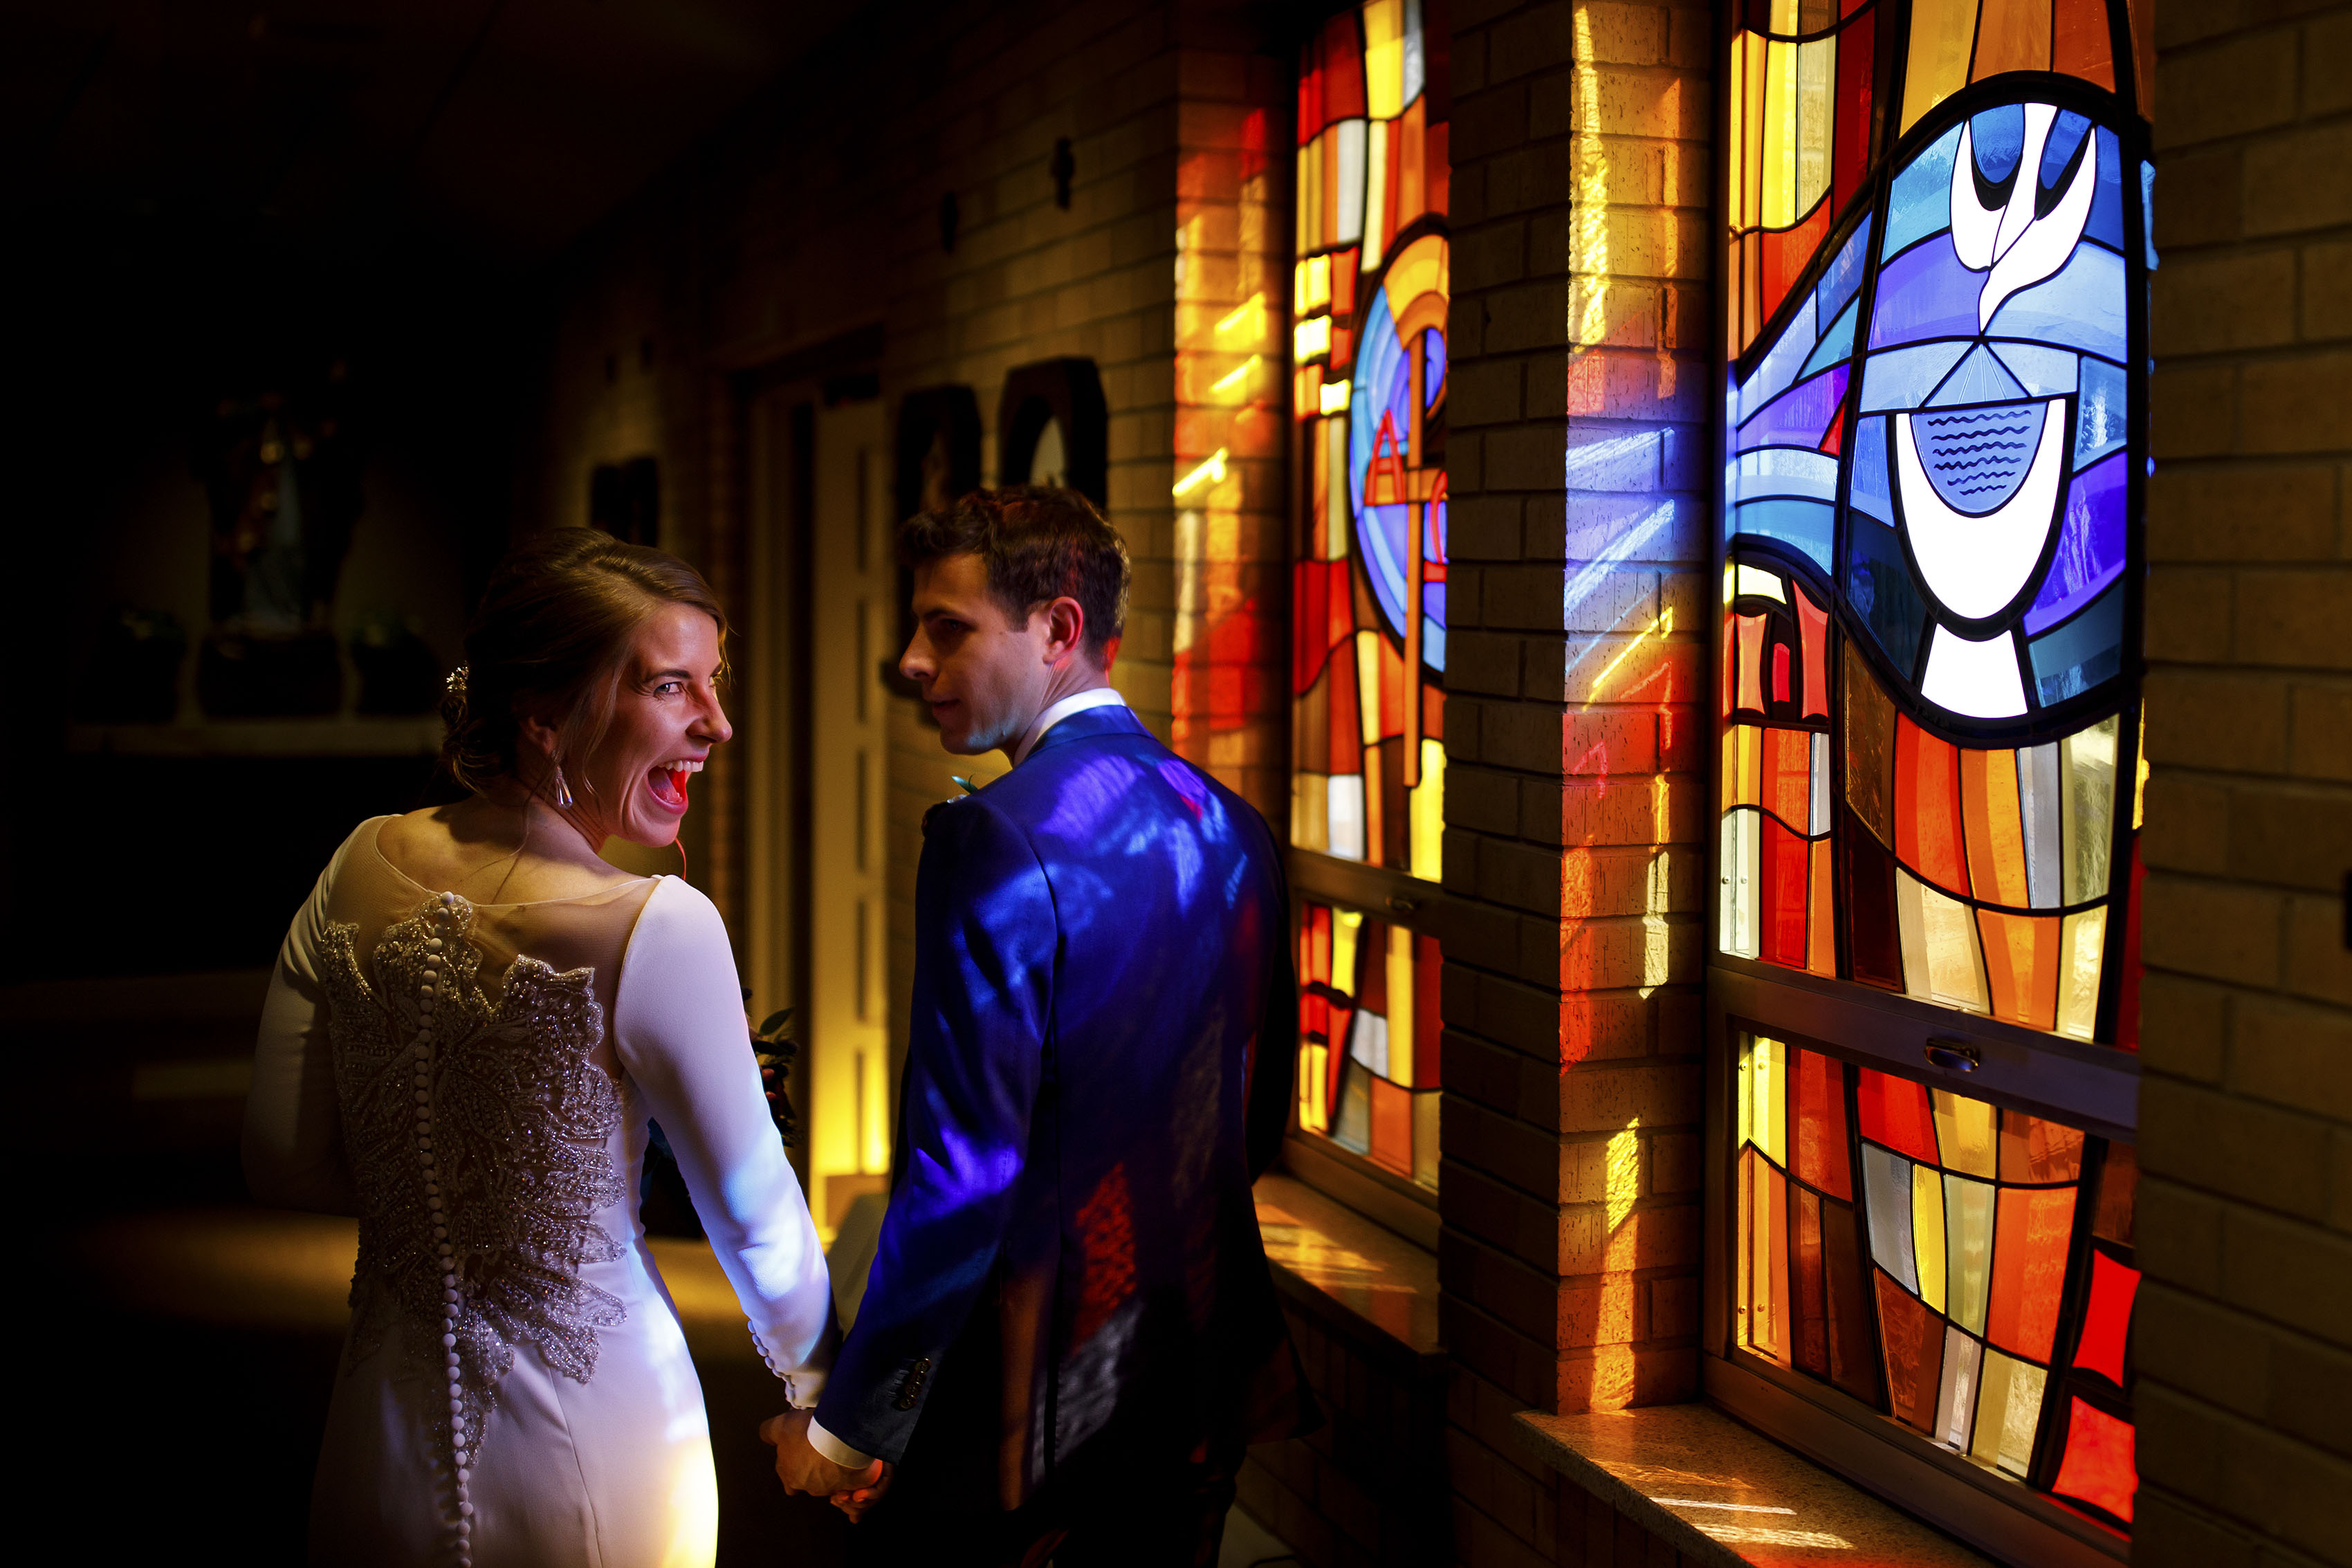 The bride laughs while walking down the stained glass hallway with her husband during her wedding day